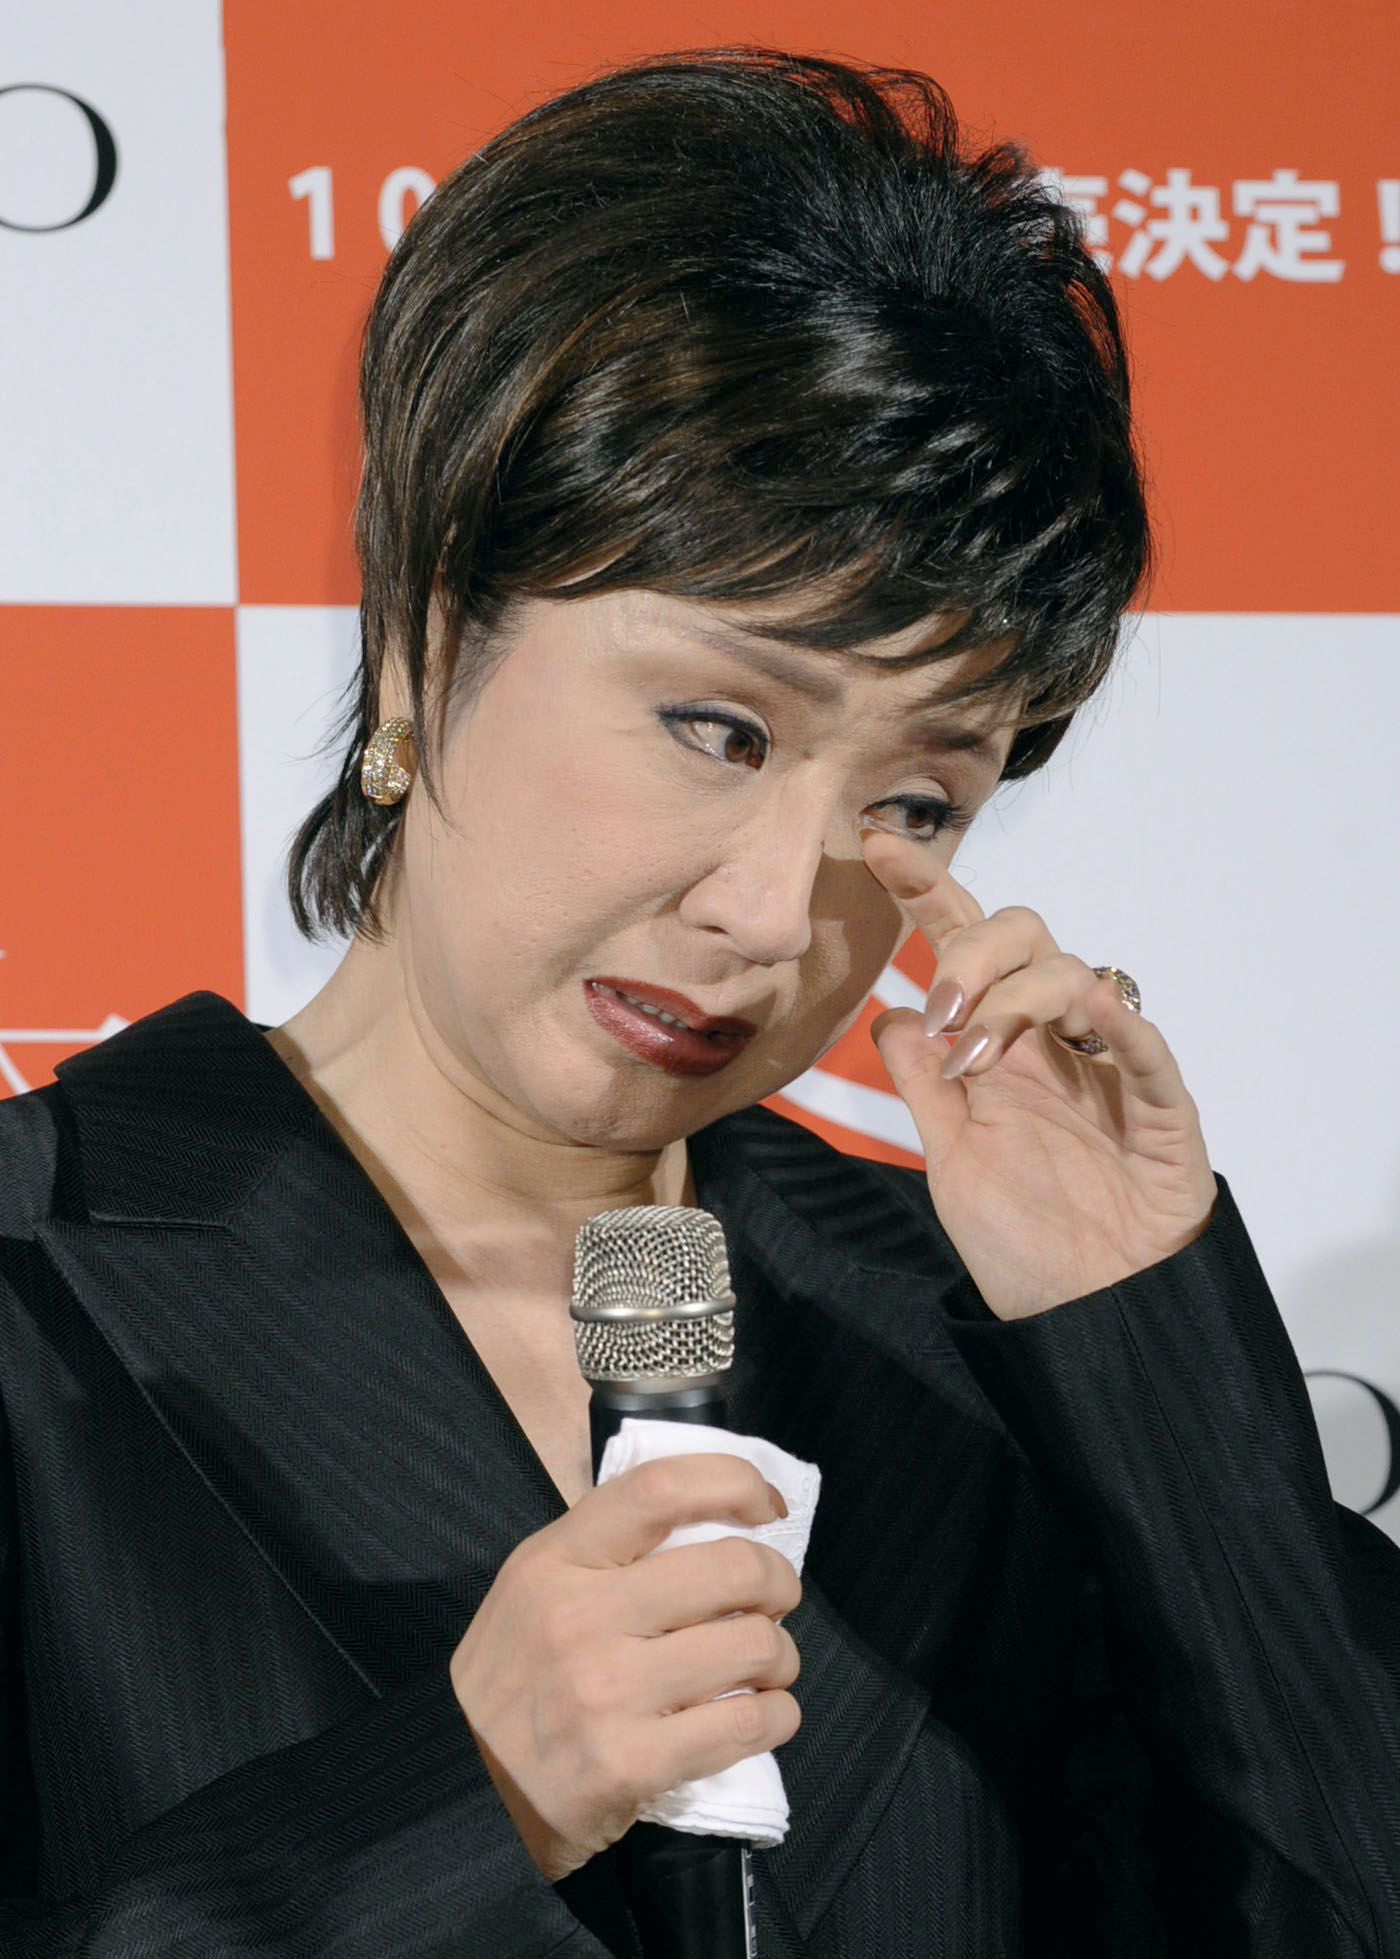 <em>Enka</em> scandal keeps star in the news